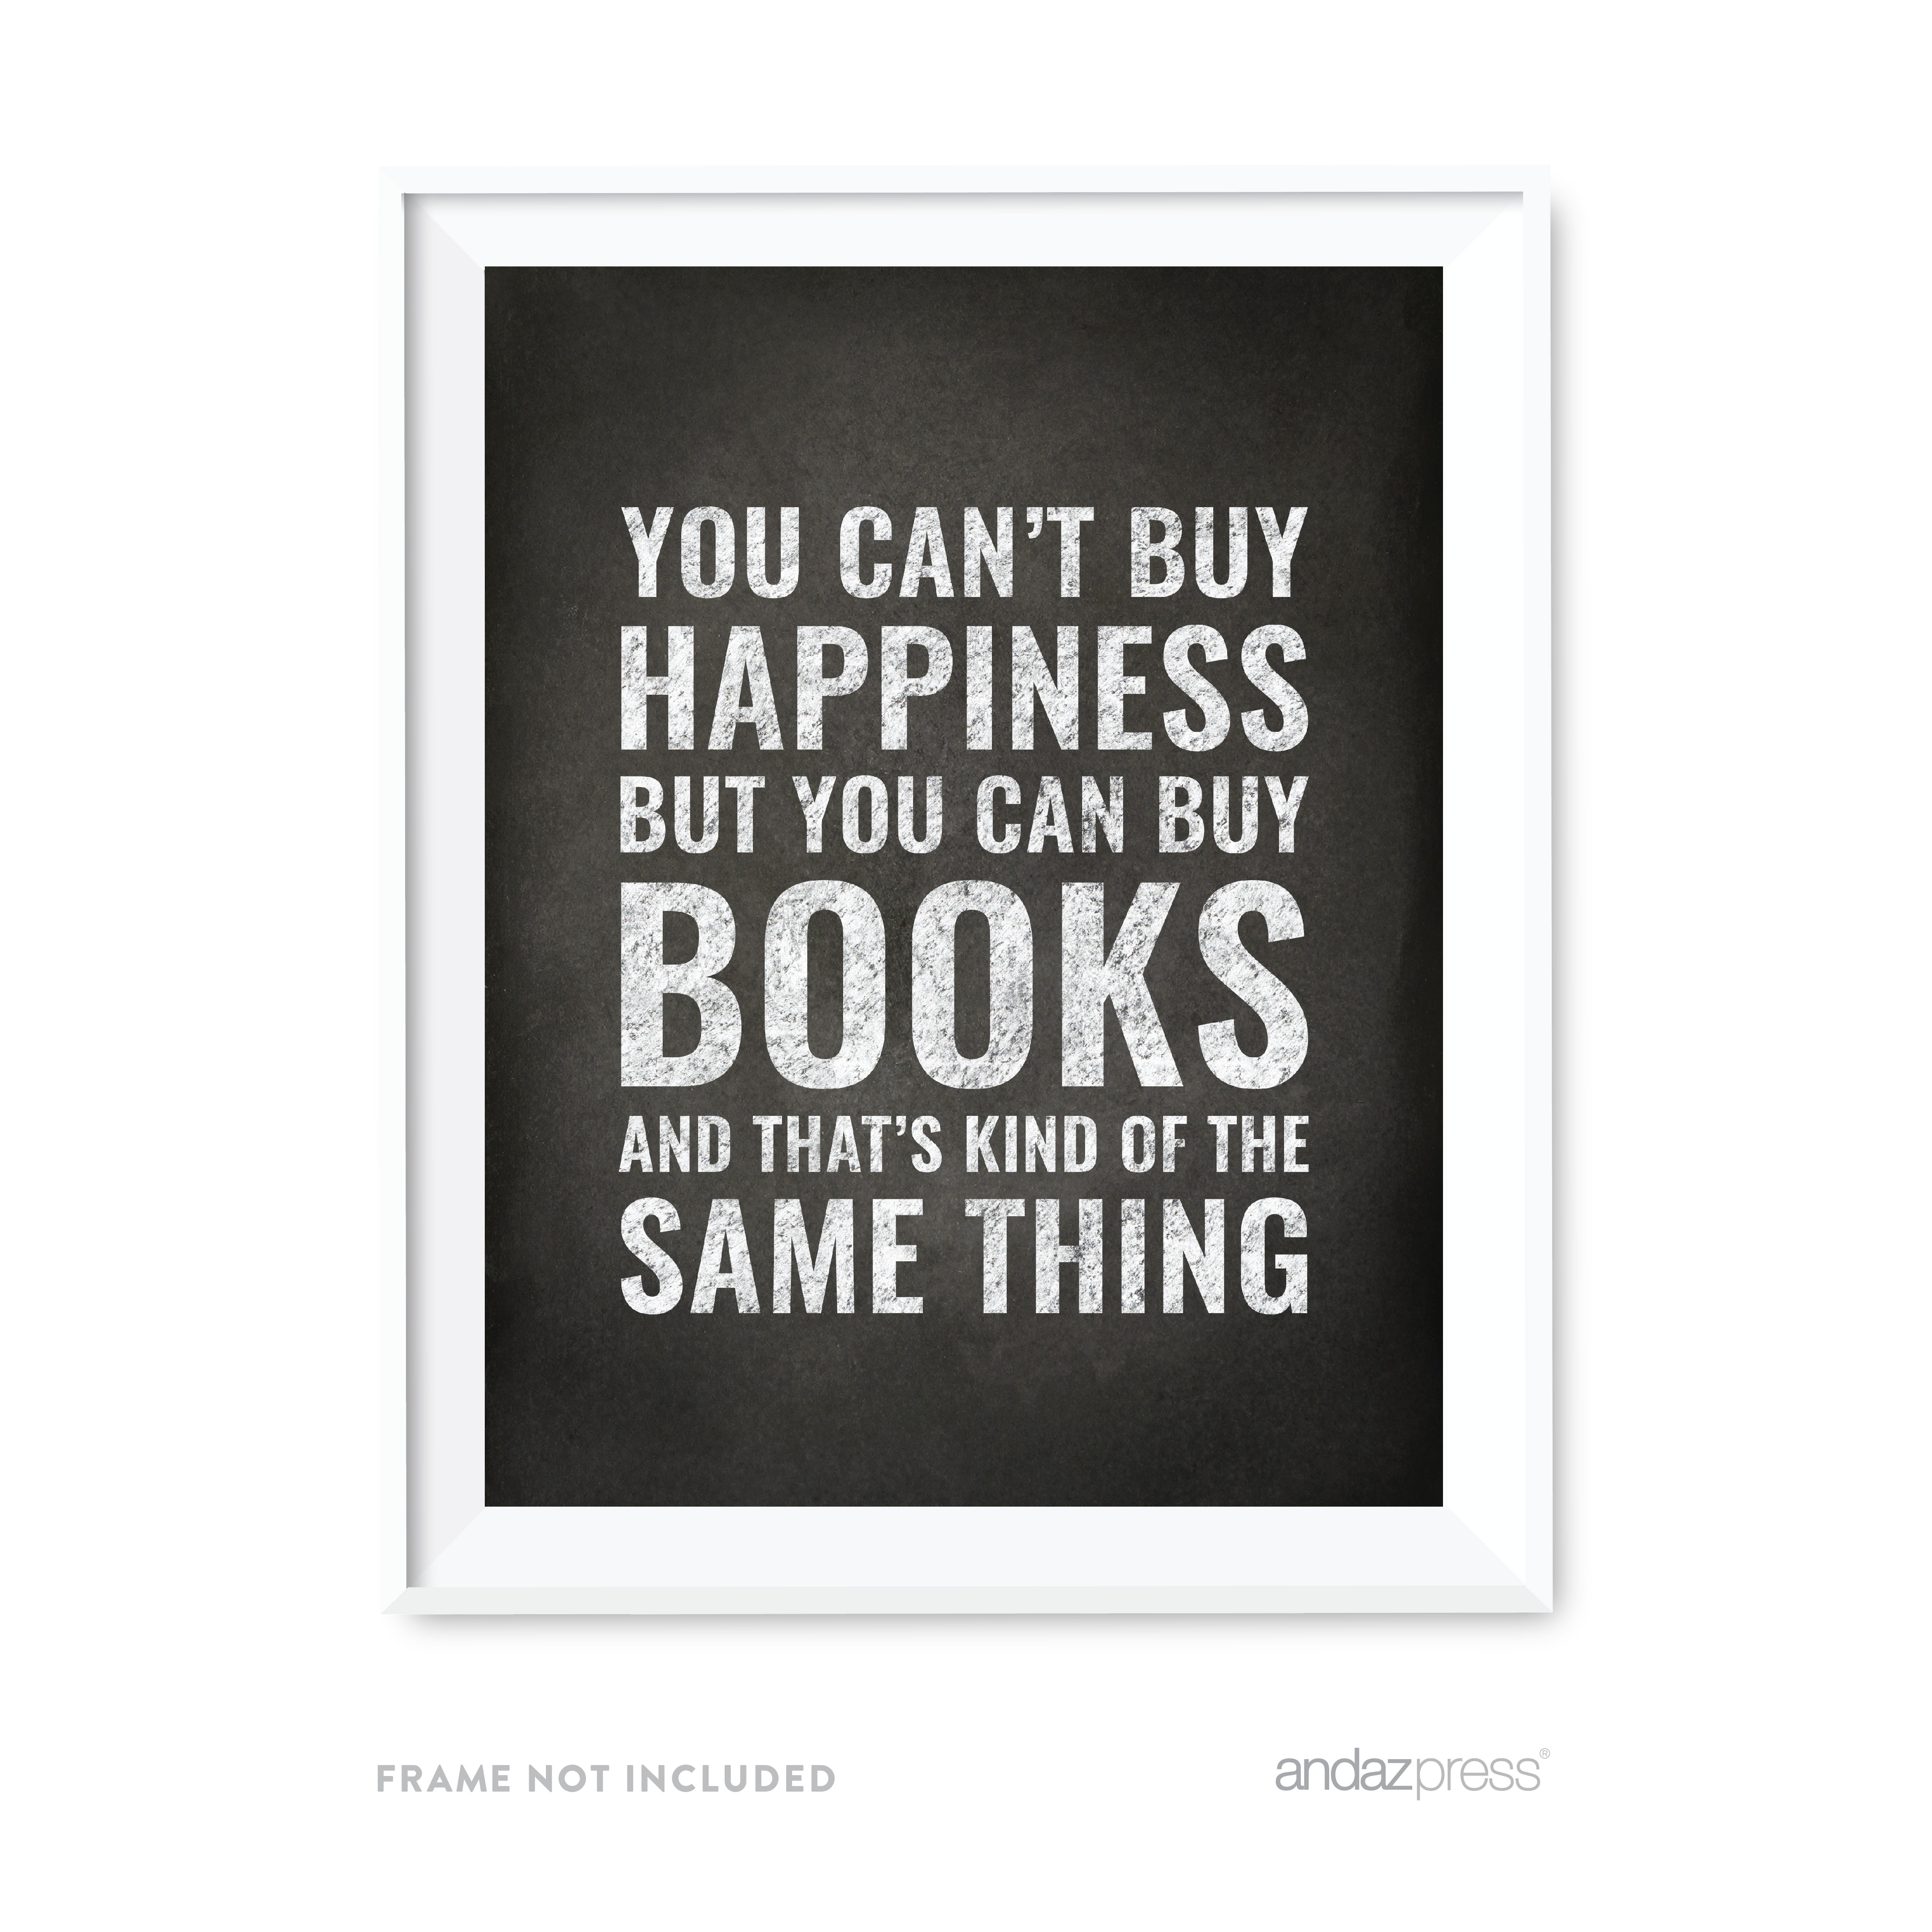 Andaz Press Library Wall Art, 8.5x11-inch You can't buy happiness but you can buy books, 1-Pack UNFRAMED